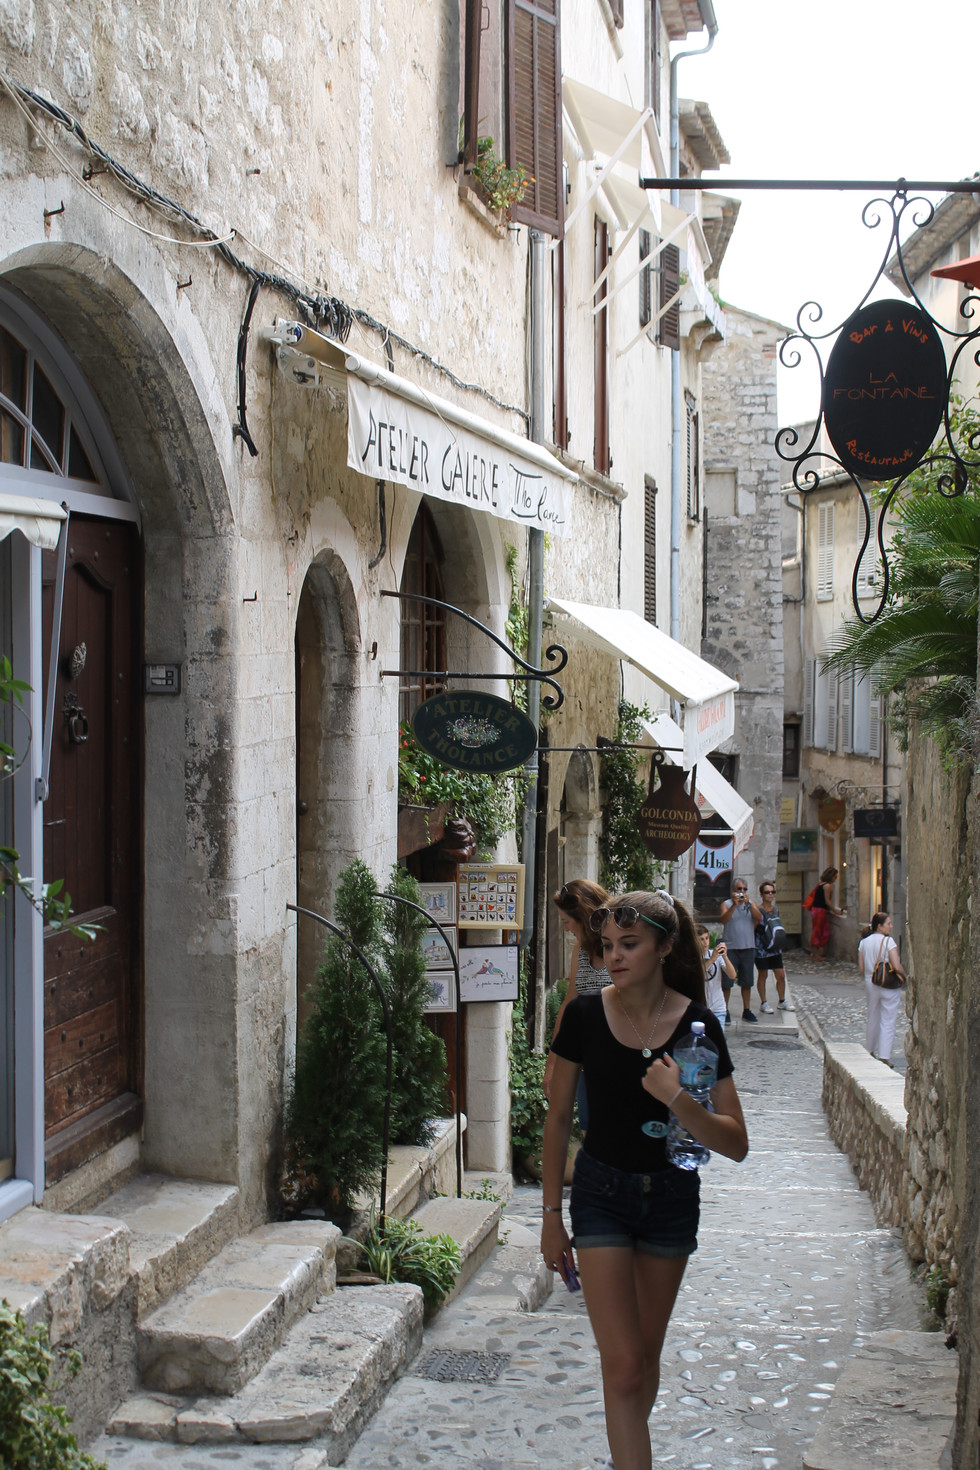 Port of Villefranche: My Son Chose an AWESOME Excursion! St. Paul de Vence